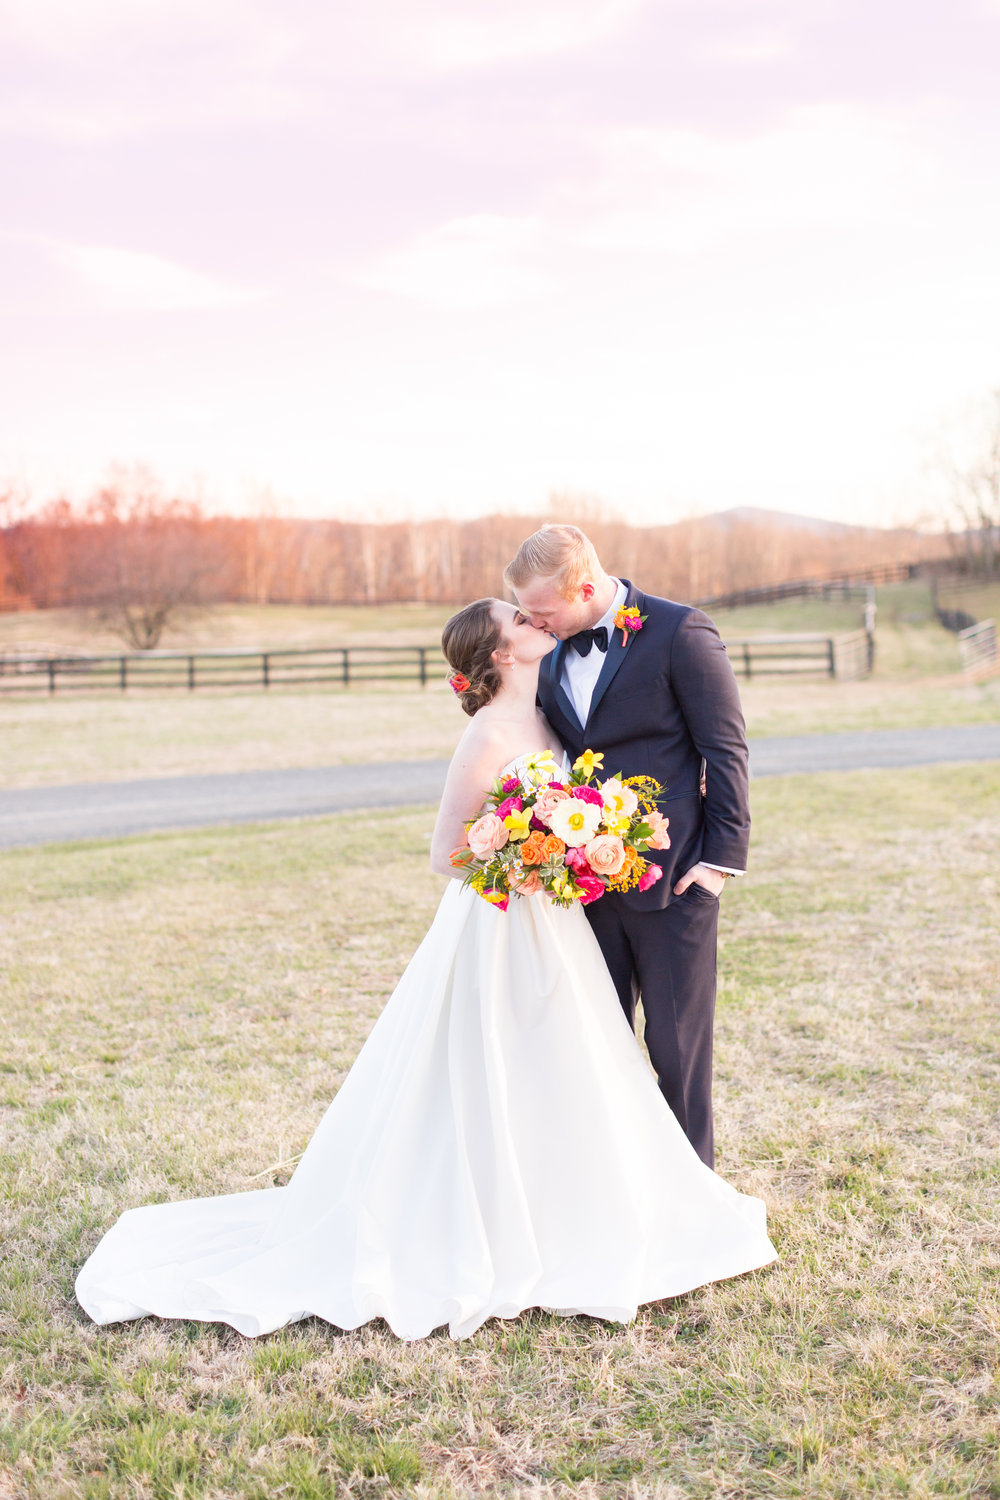 Equestrian Wedding at Middleburg Barn  Brett Denfeld Photography